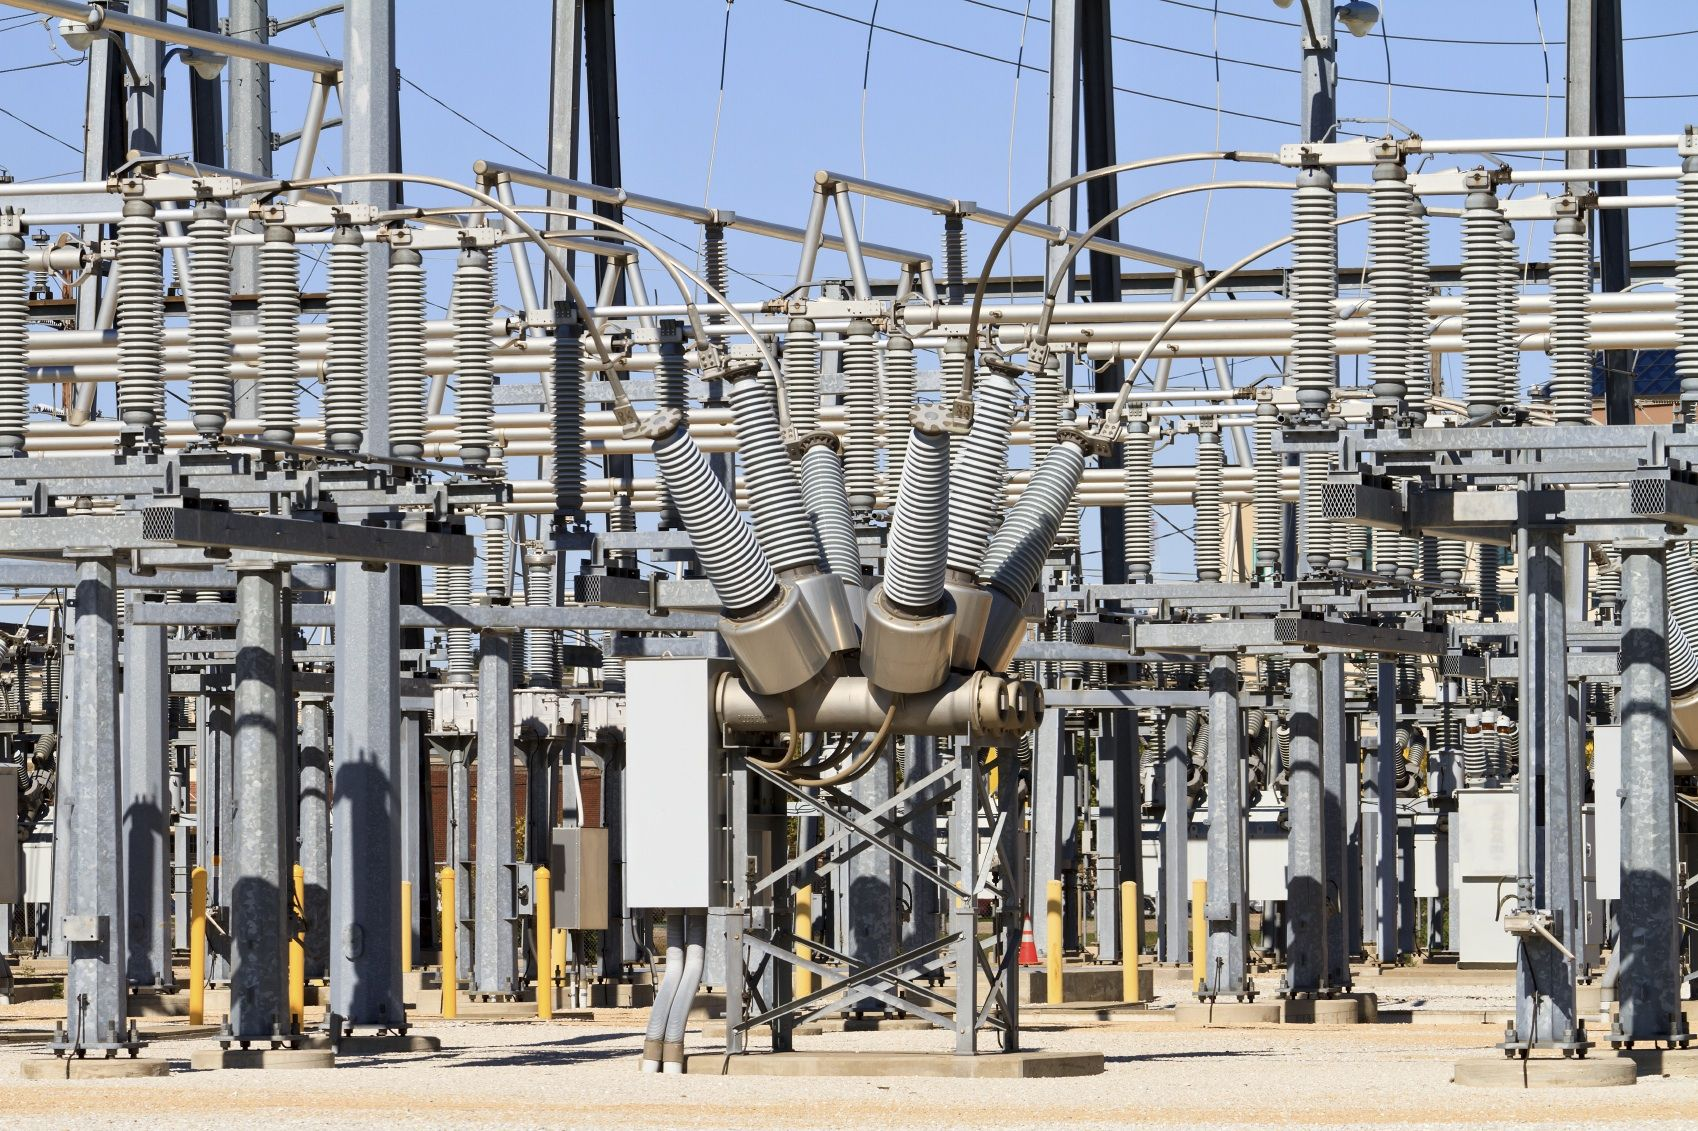 Power Substation Homeland security, Power engineering